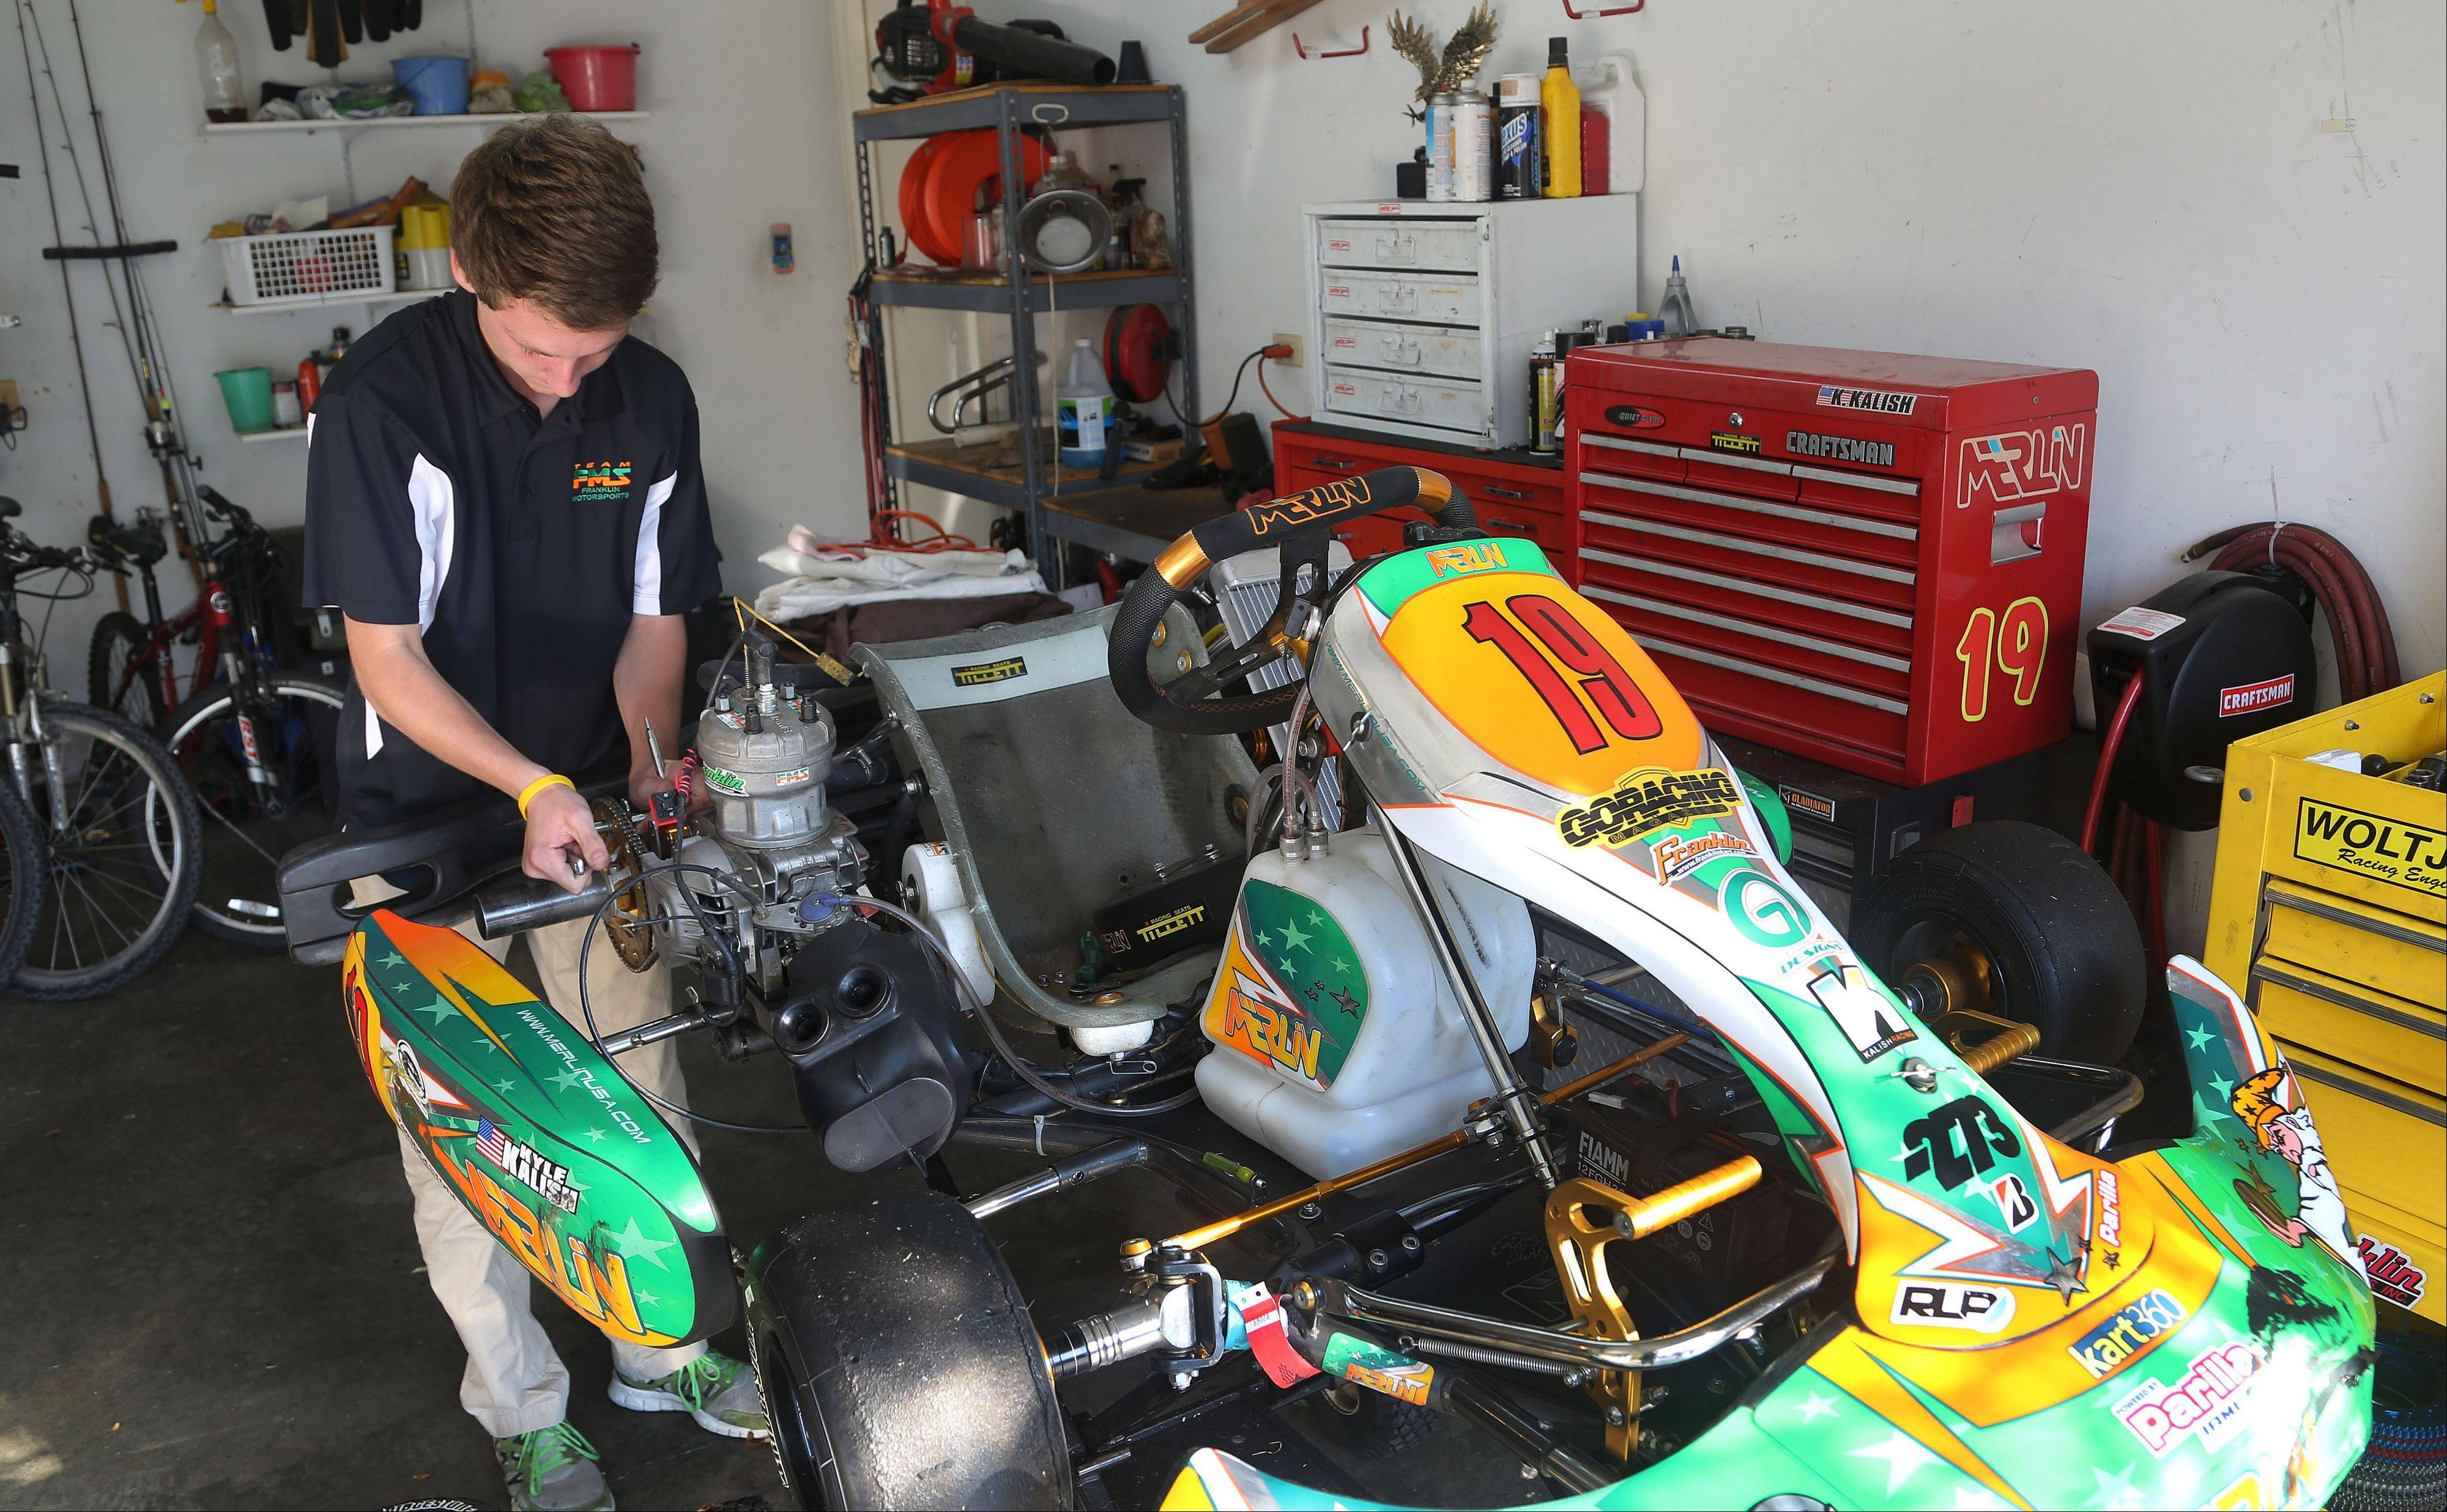 Four-time national champion go-kart racer Kyle Kalish works on his kart at home in Wauconda. Kyle, a junior at Mundelein High School, hopes to become a professional race car driver and is an outstanding student with plans to attend college.